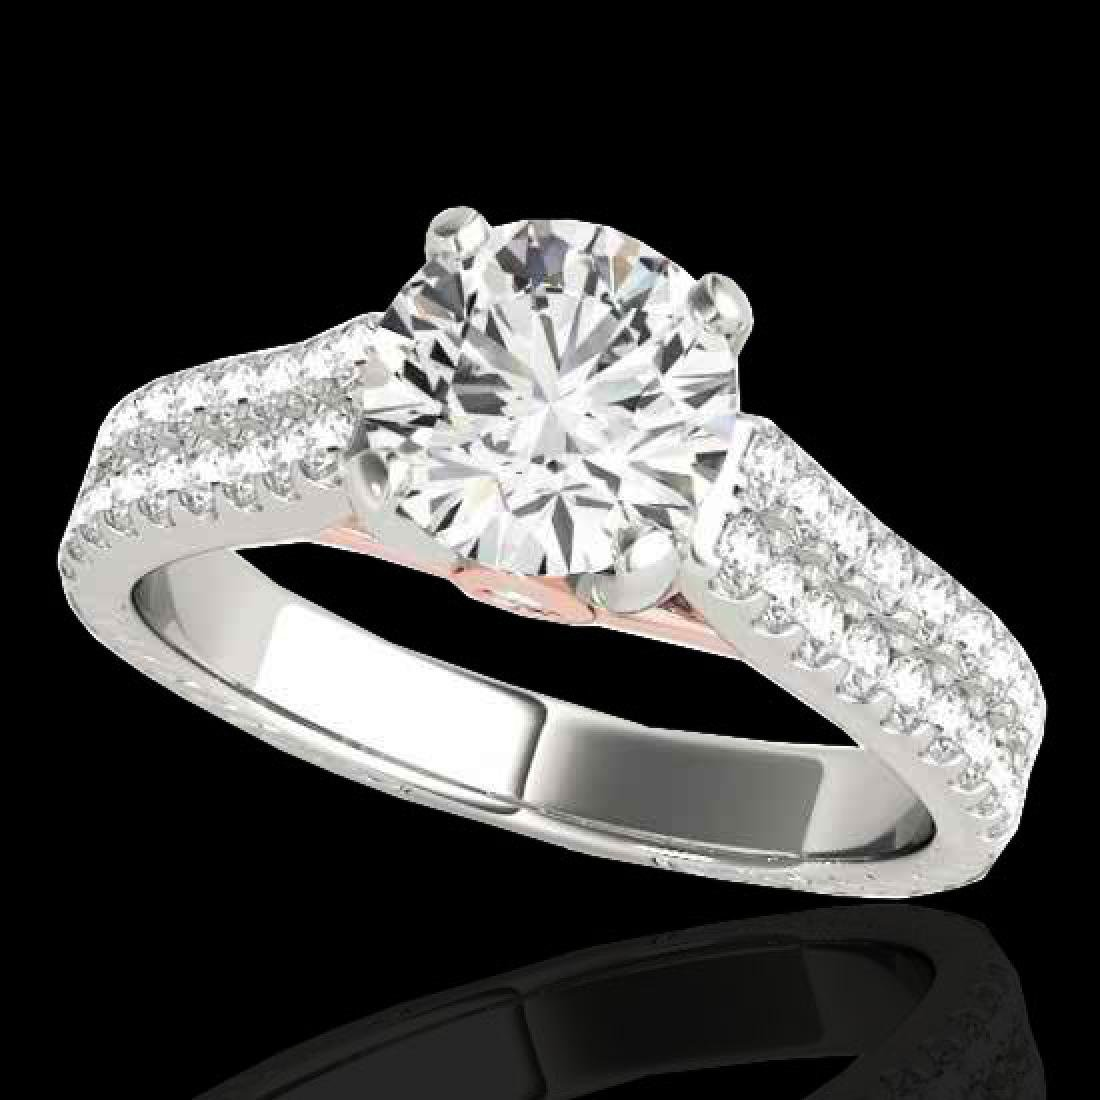 2.11 CTW H-SI/I Certified Diamond Pave Ring 10K White &